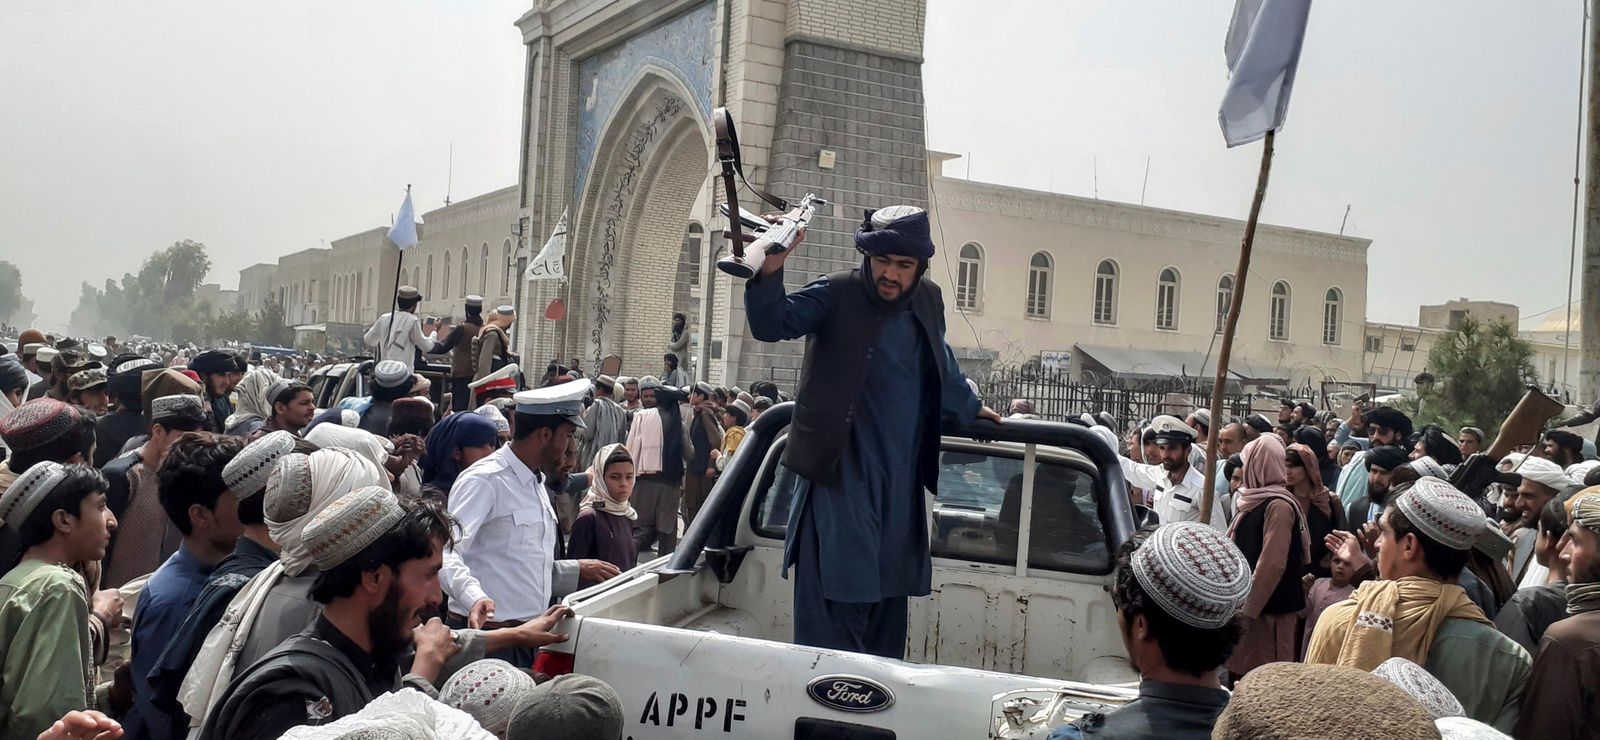 Taliban's director for Media and culture talks with journalists after former Governor surrendered